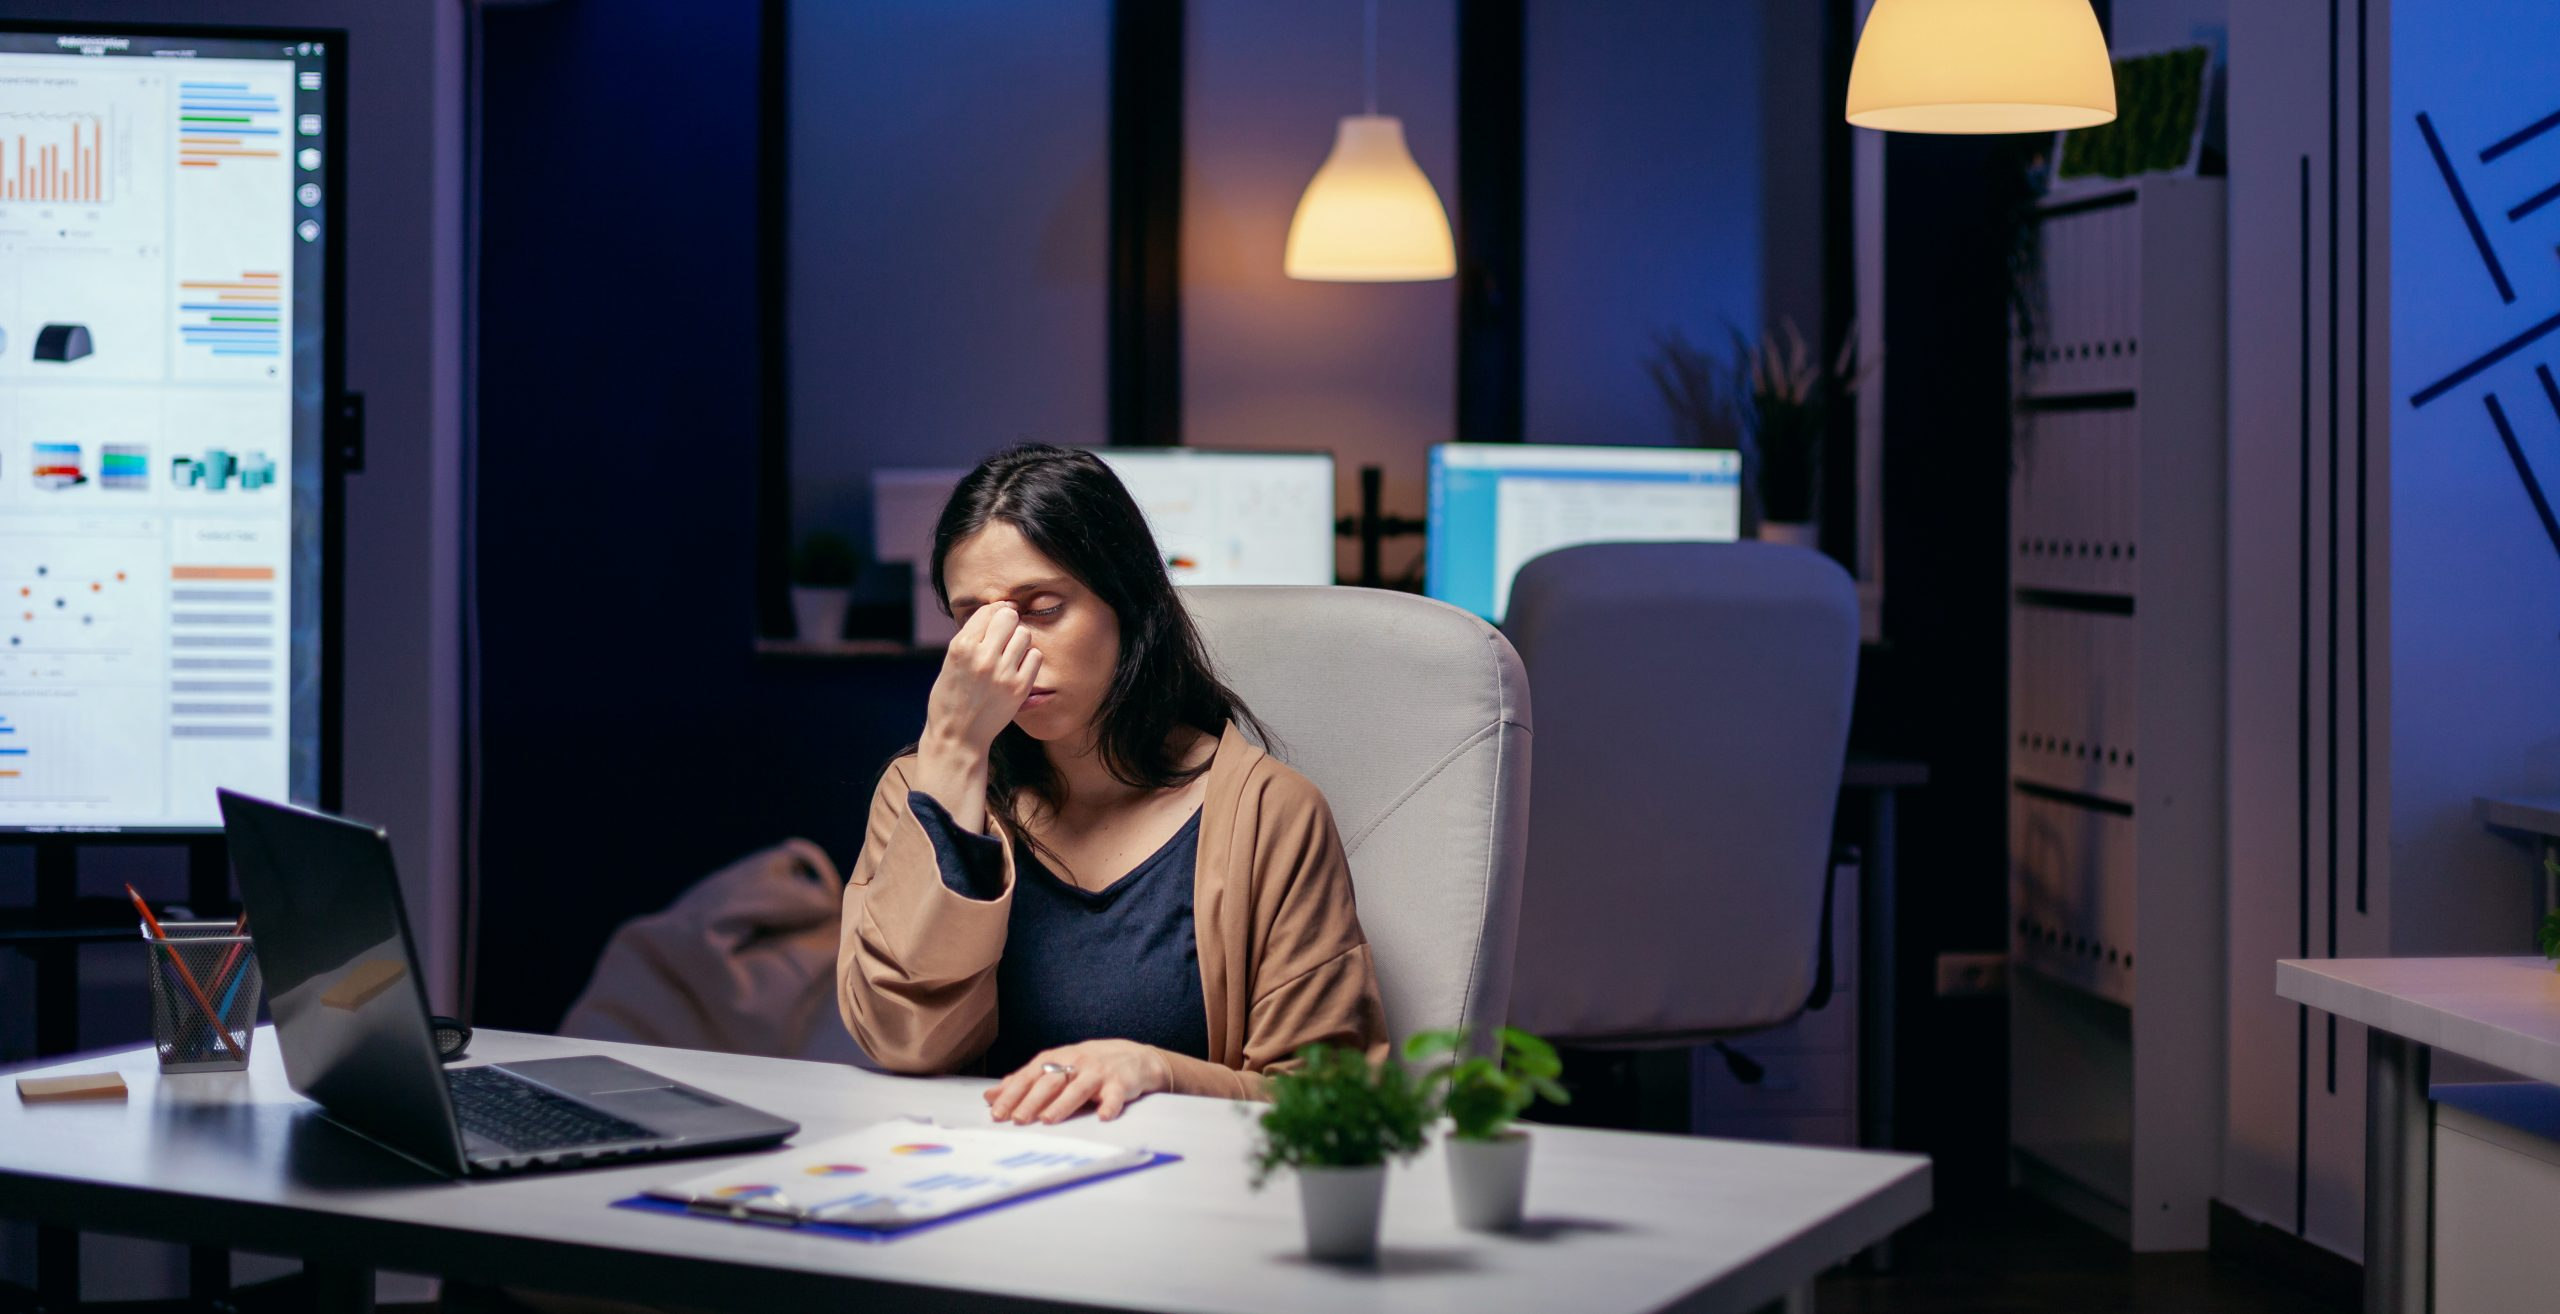 15 ways to relieve work-related stress and tension